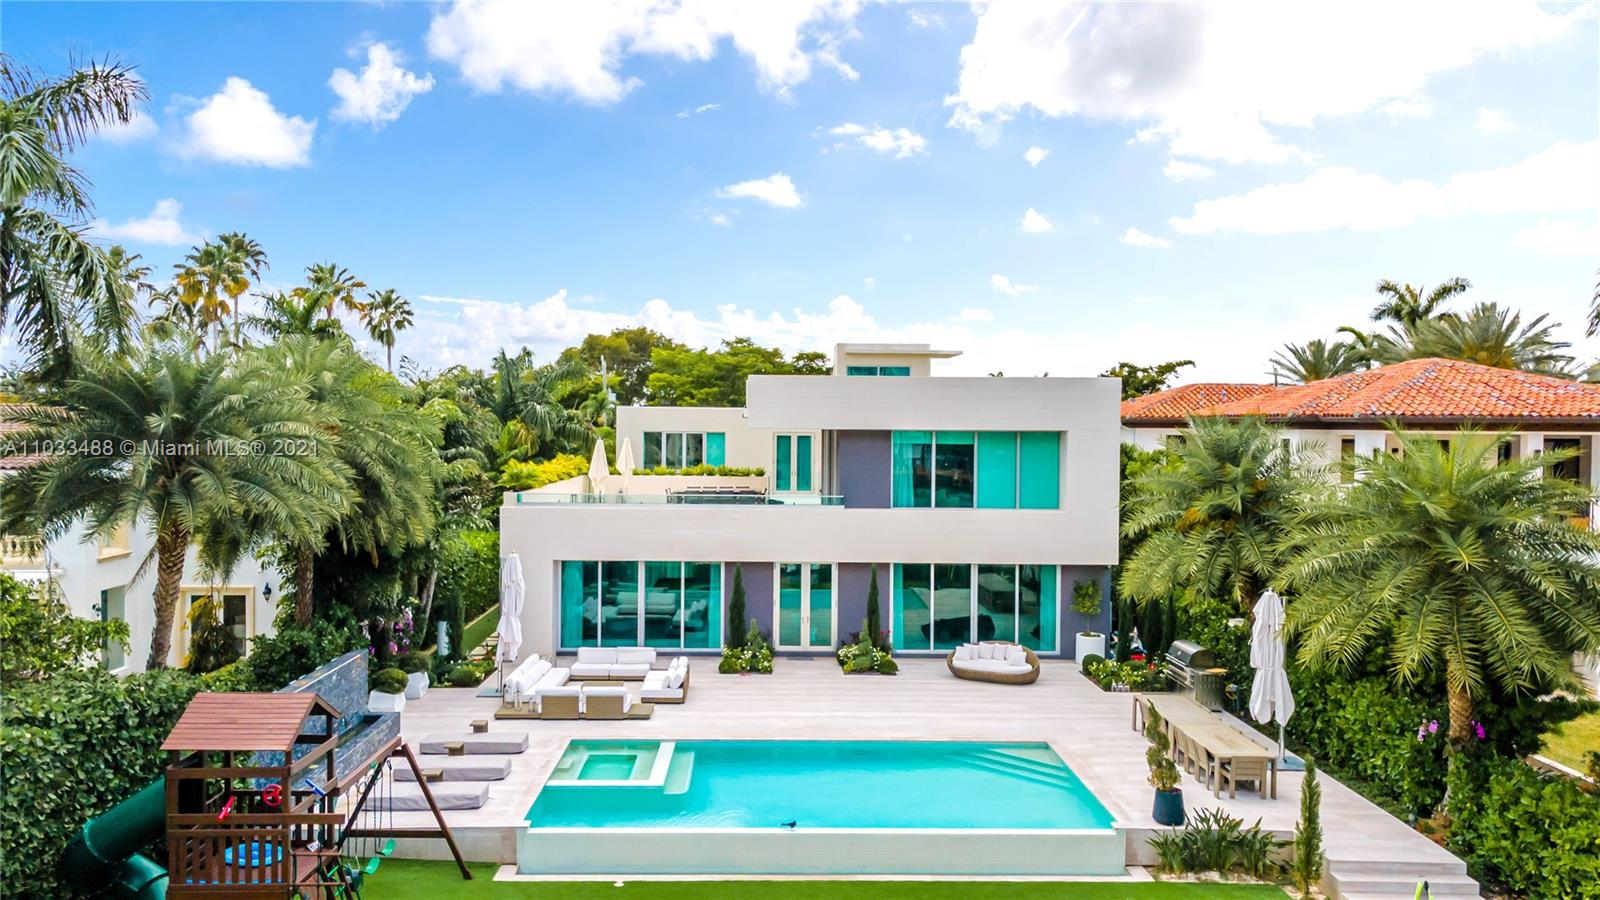 Beach View - 5711 Pine Tree Dr, Miami Beach, FL 33140